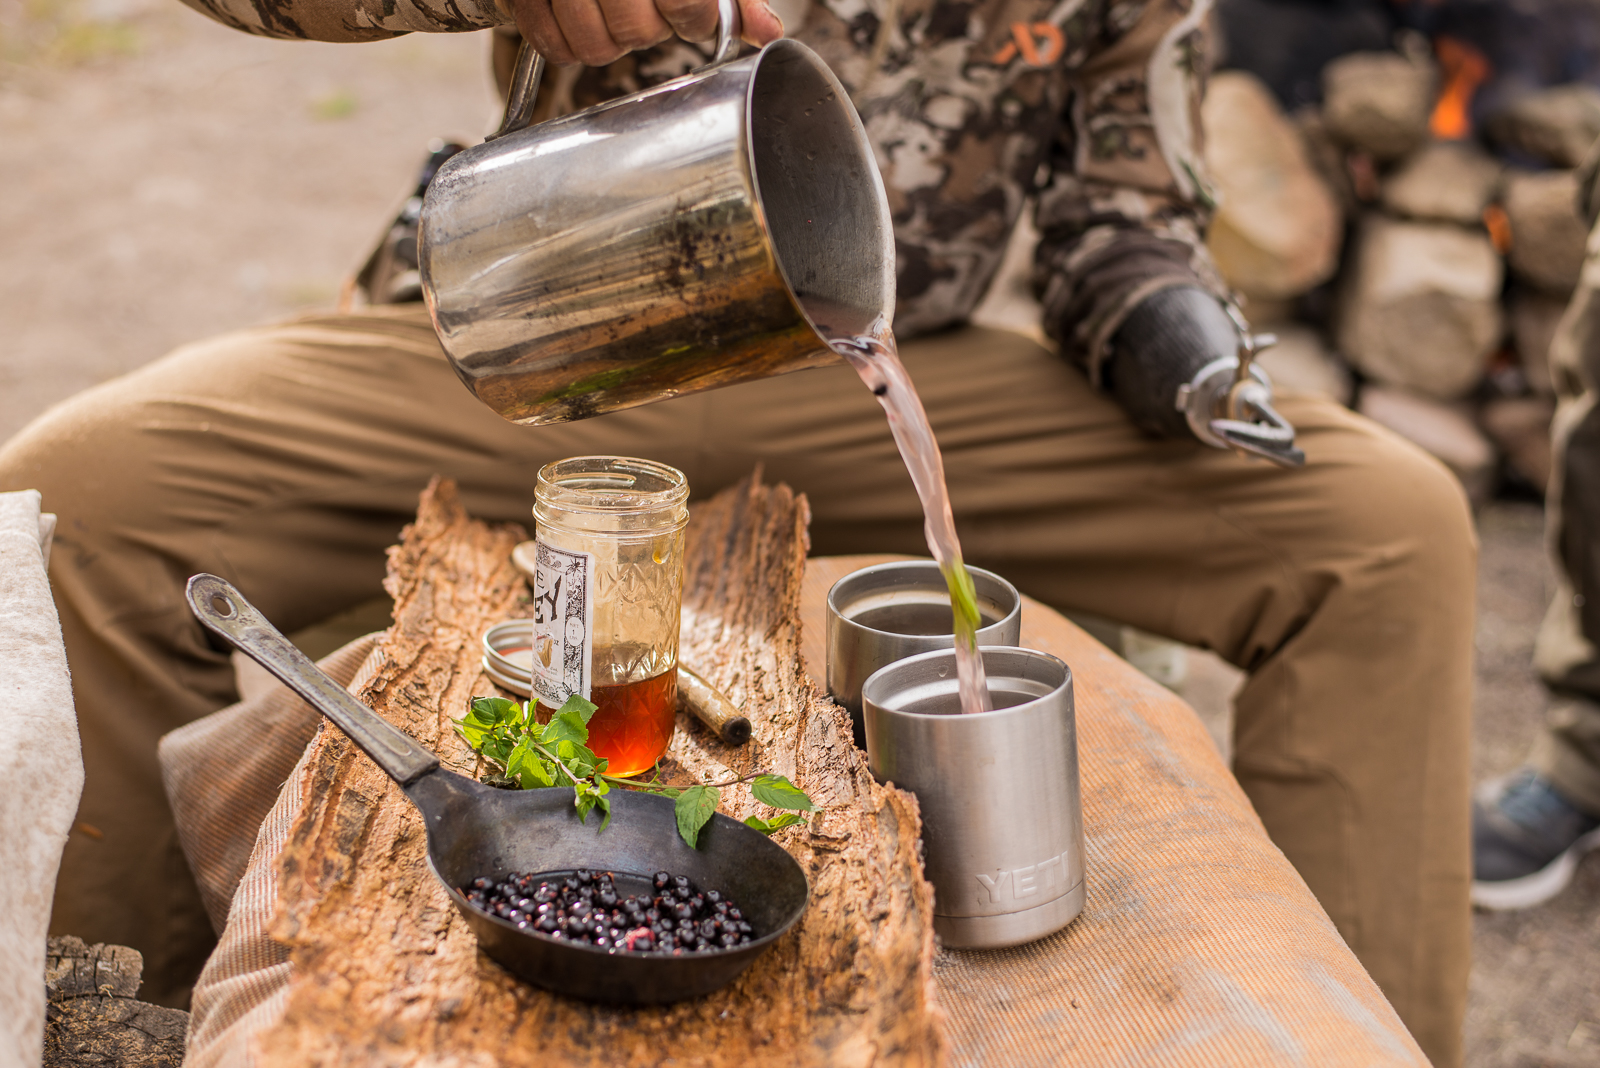 eduardo makes a moonshine hot toddy at 10,000ft from foraged mint and blackcurrants.  photo: yogesh simpson